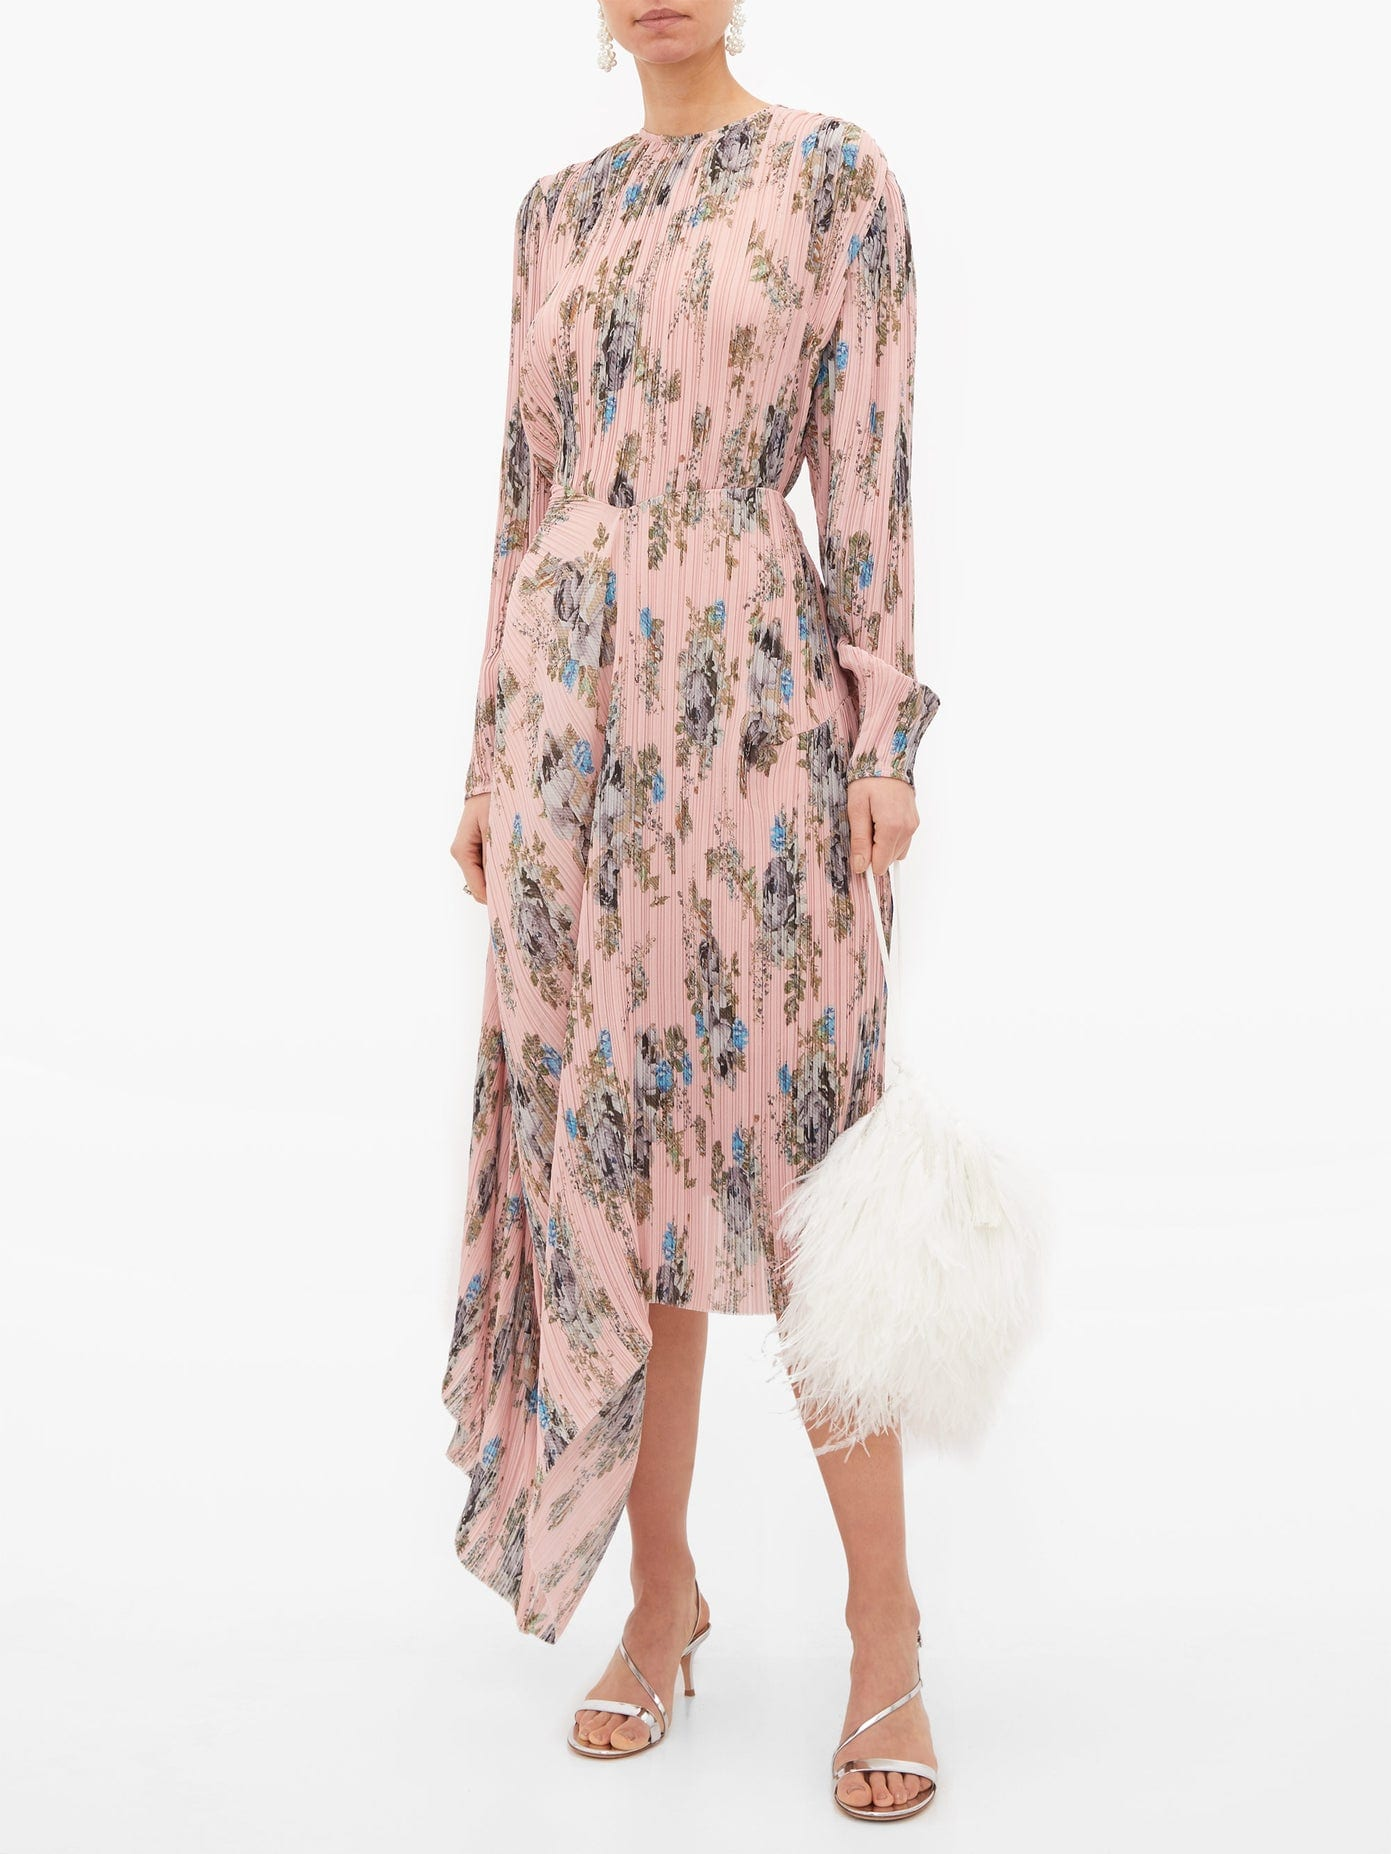 PREEN BY THORNTON BREGAZZI Delaney Asymmetric Floral-print Plissé Dress